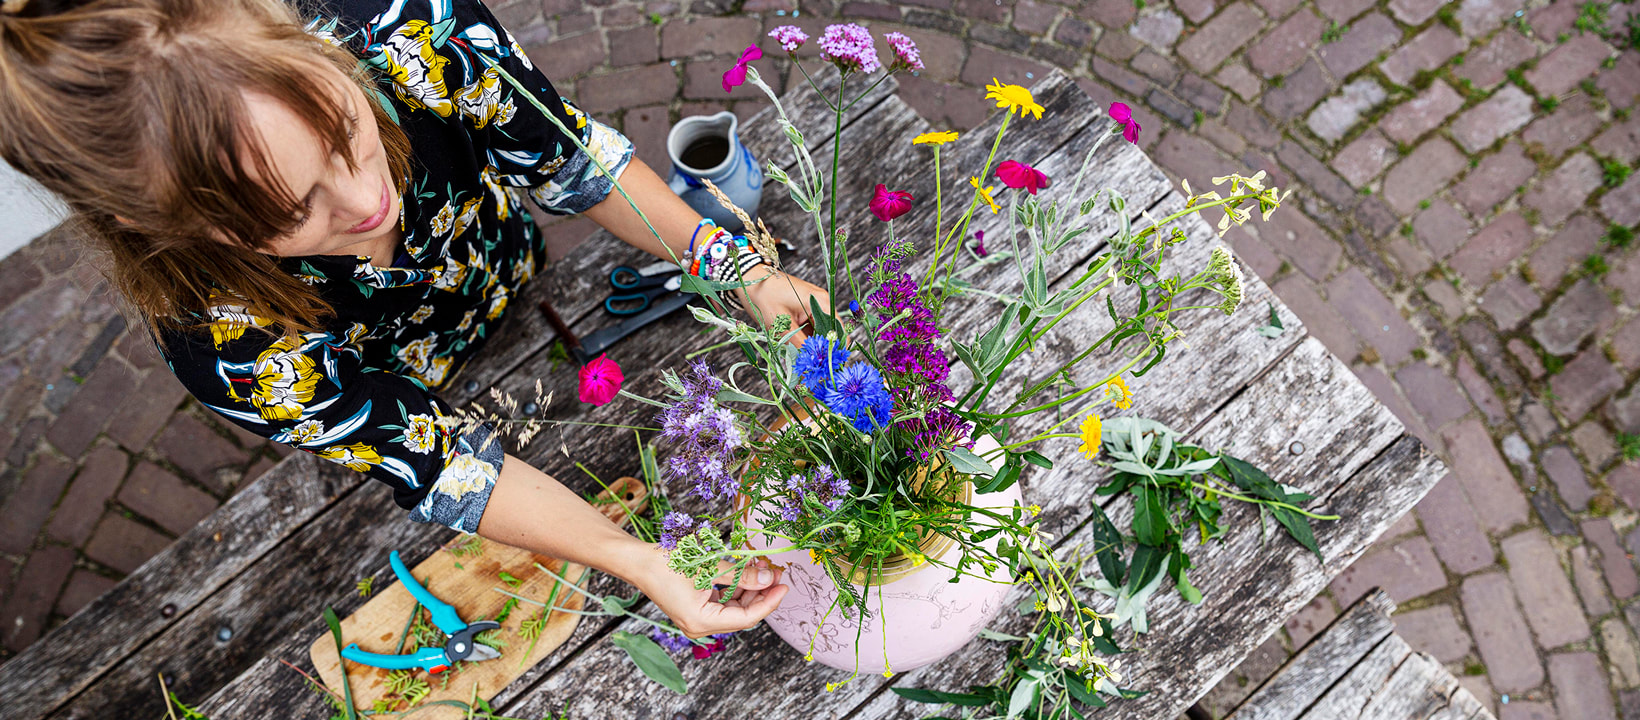 House of Thol: Jana arranging flowers // photograph by Gaav Content